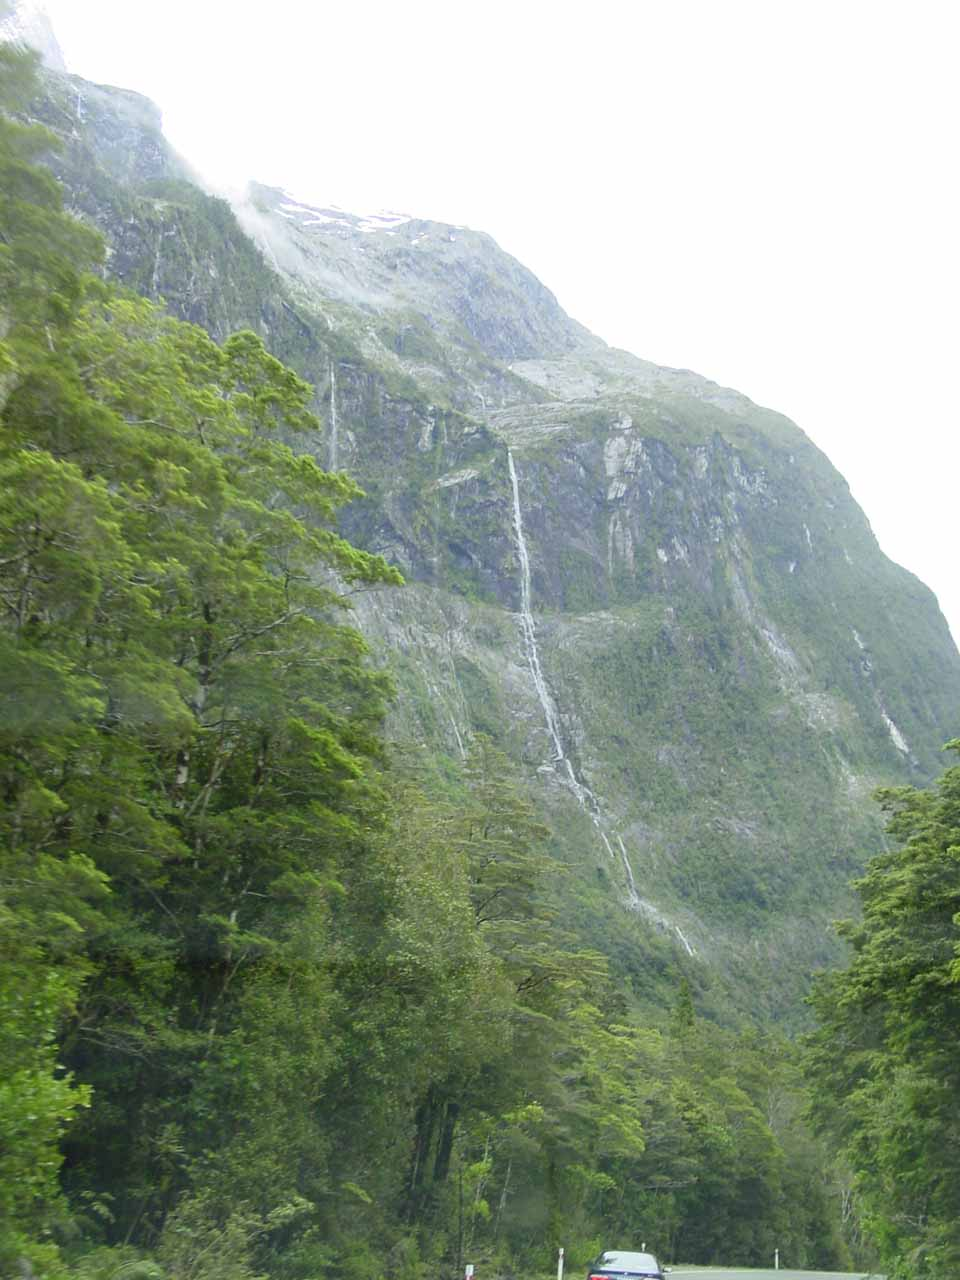 A series of tall ephemeral waterfalls somewhere not far from the Chasm along the Milford Highway